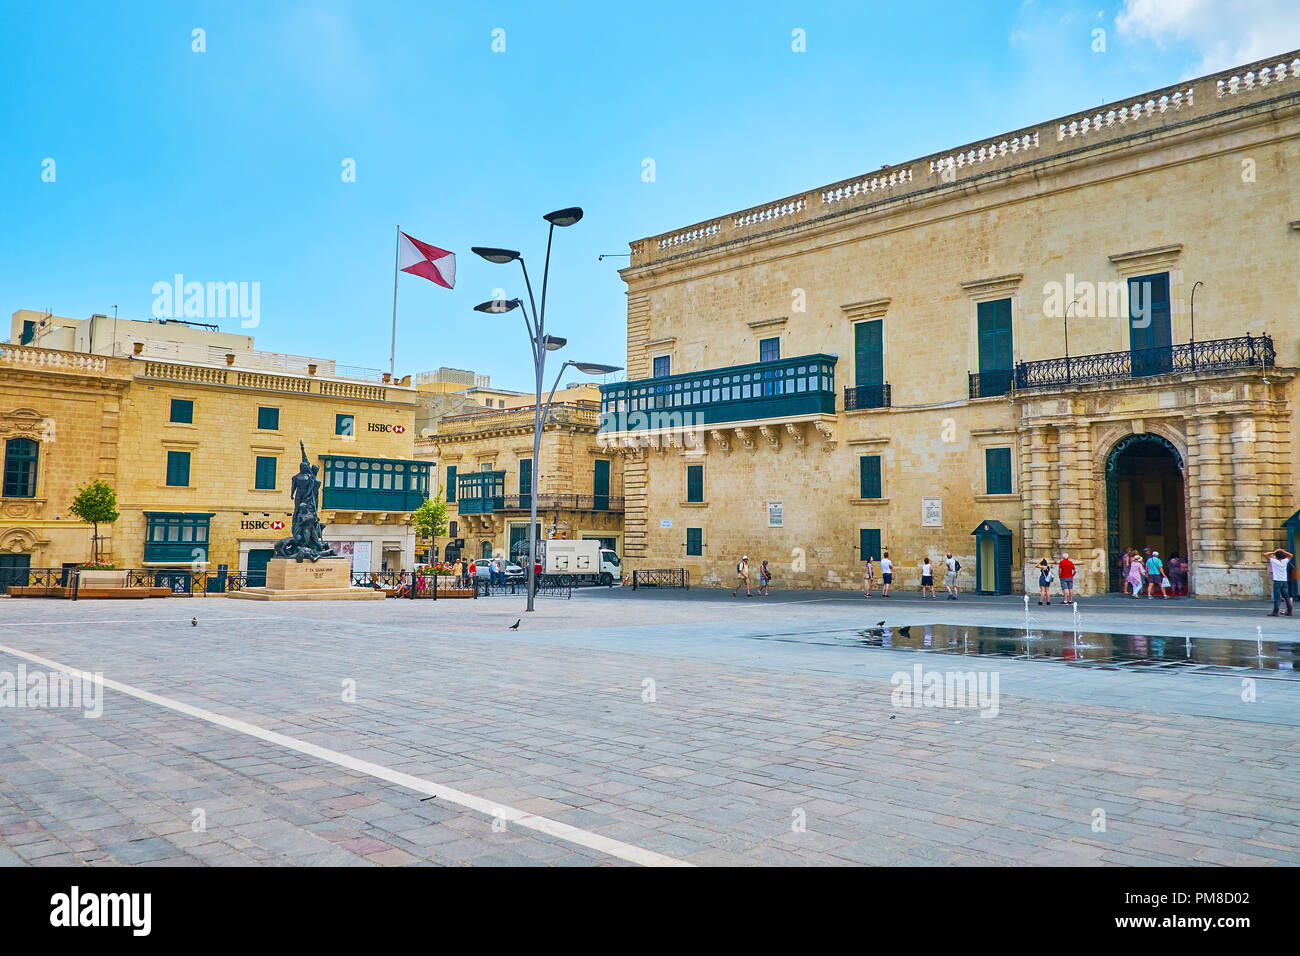 VALLETTA, MALTA - JUNE 17, 2018:  The St George's Square is the main area in city with preserved historical and architectural landmarks, such as Grand - Stock Image